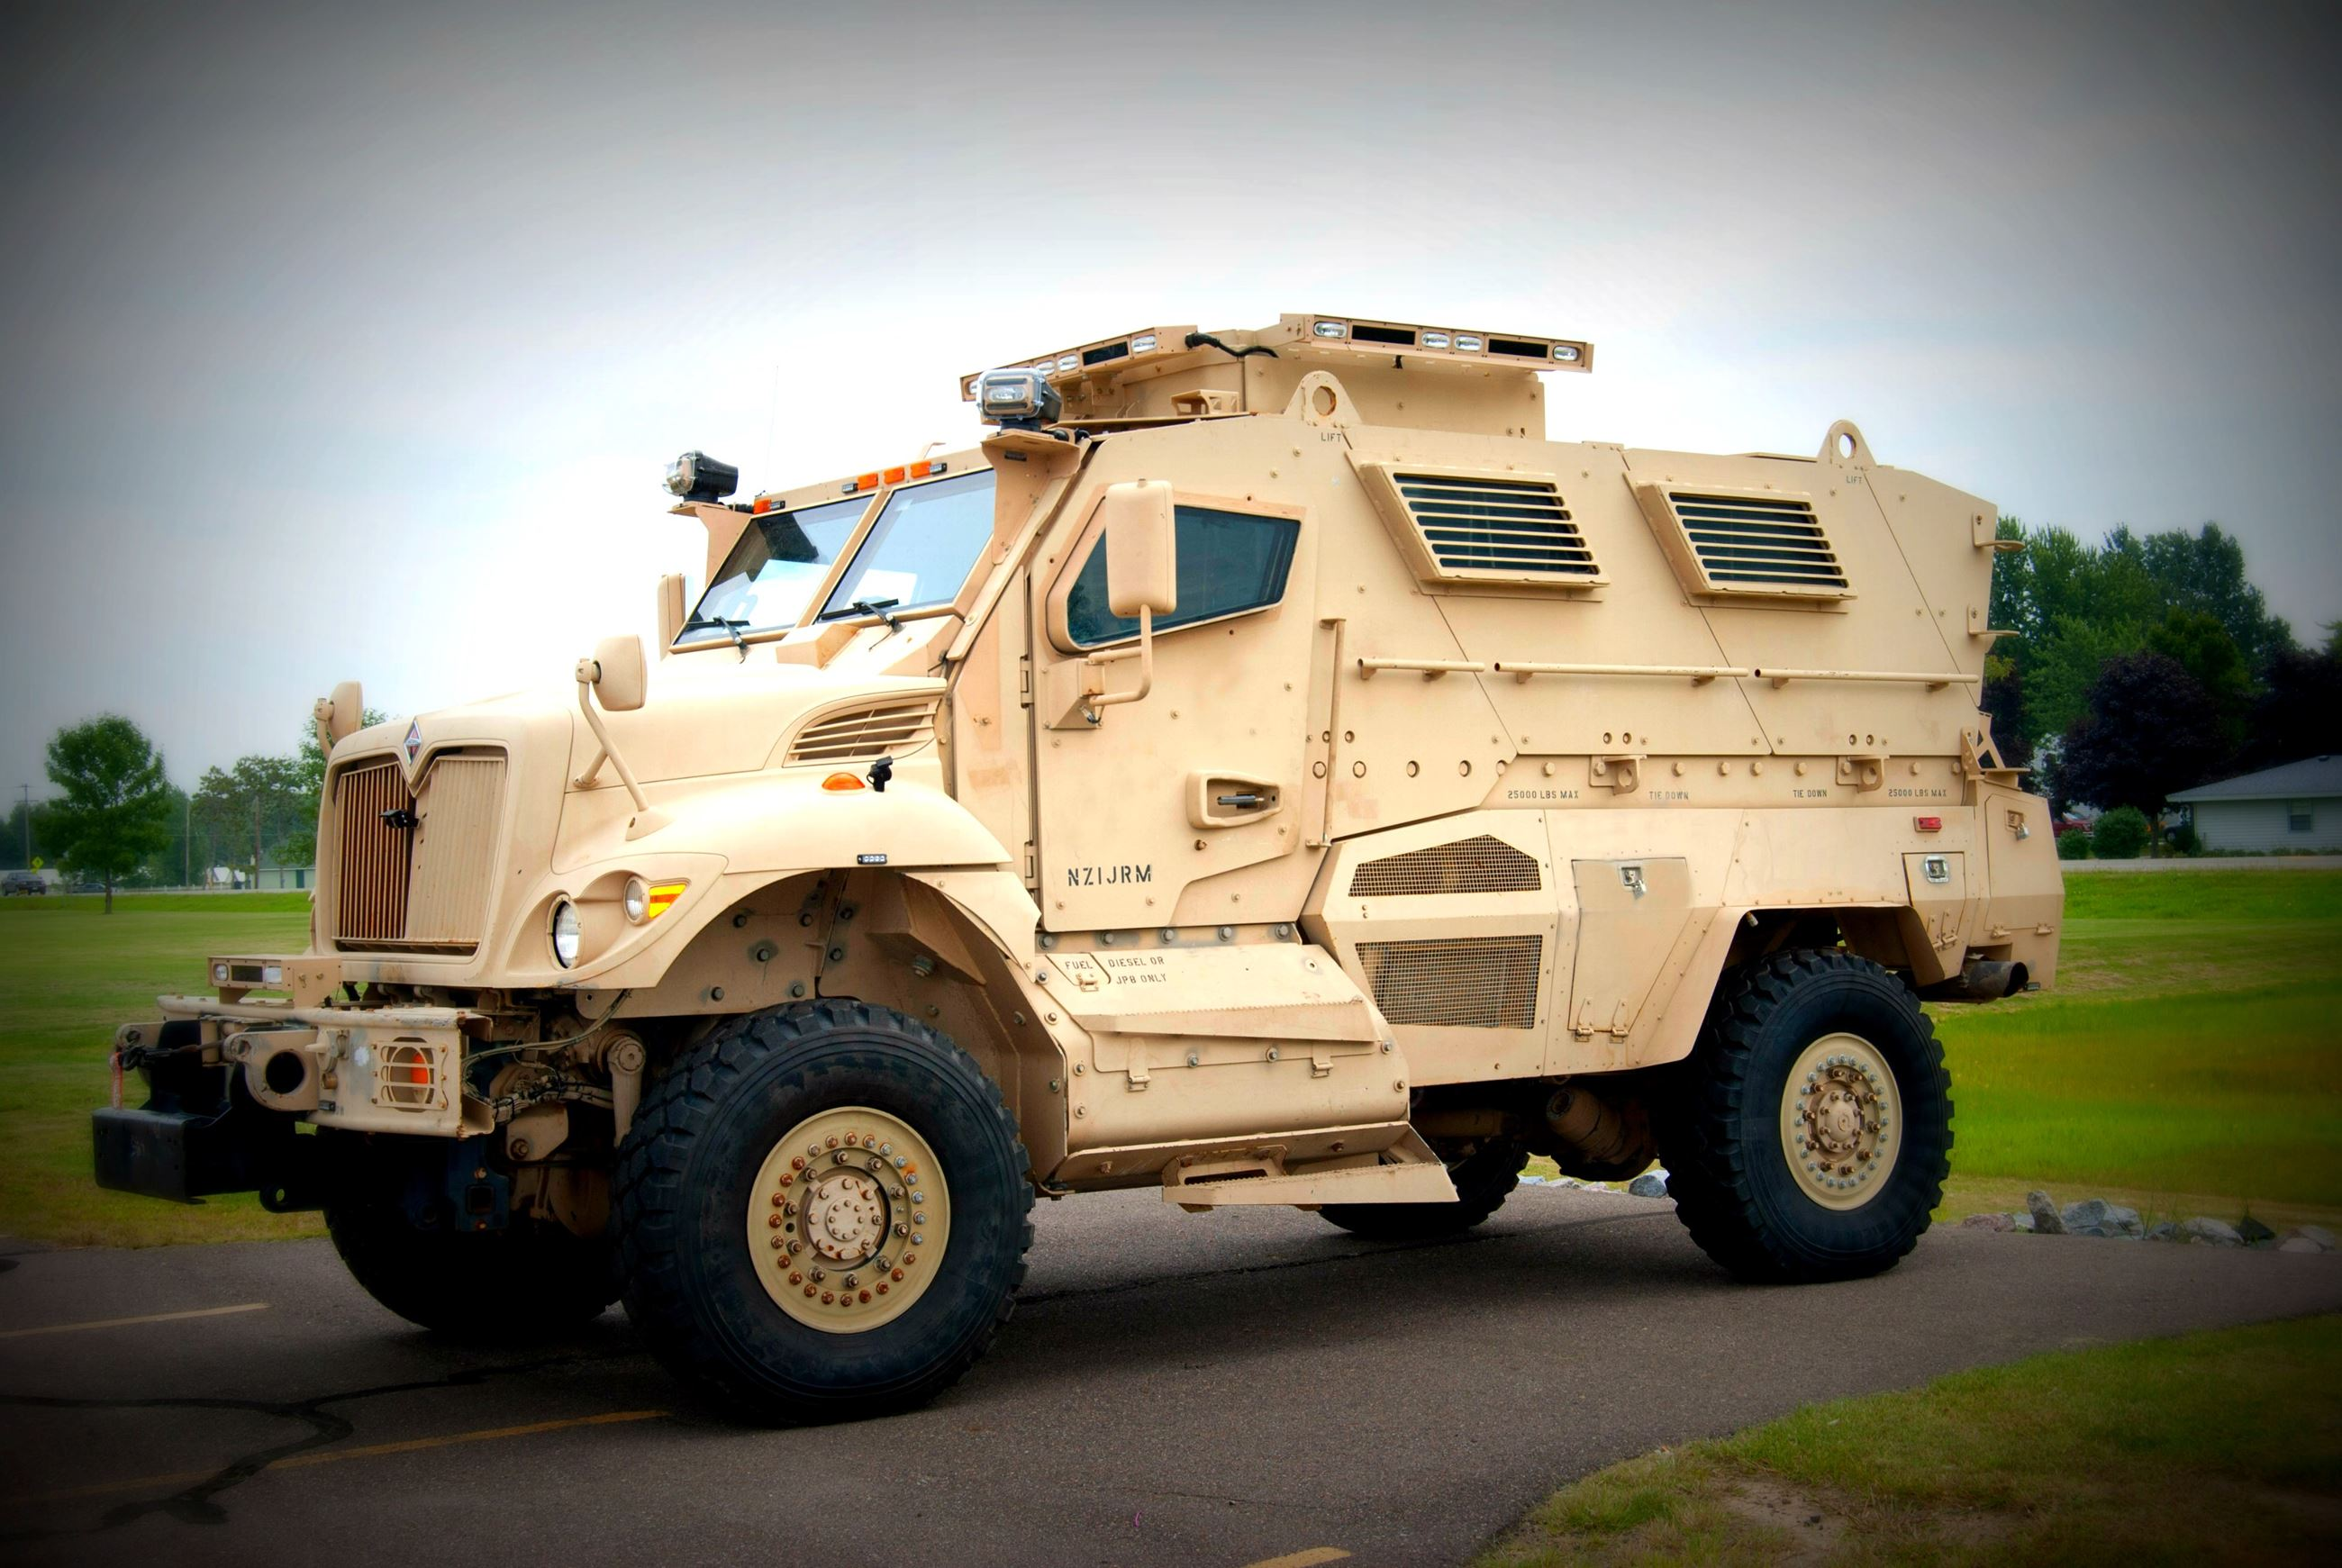 Image of Mine-Resistant Ambush Protected (MRAP) Vehicle